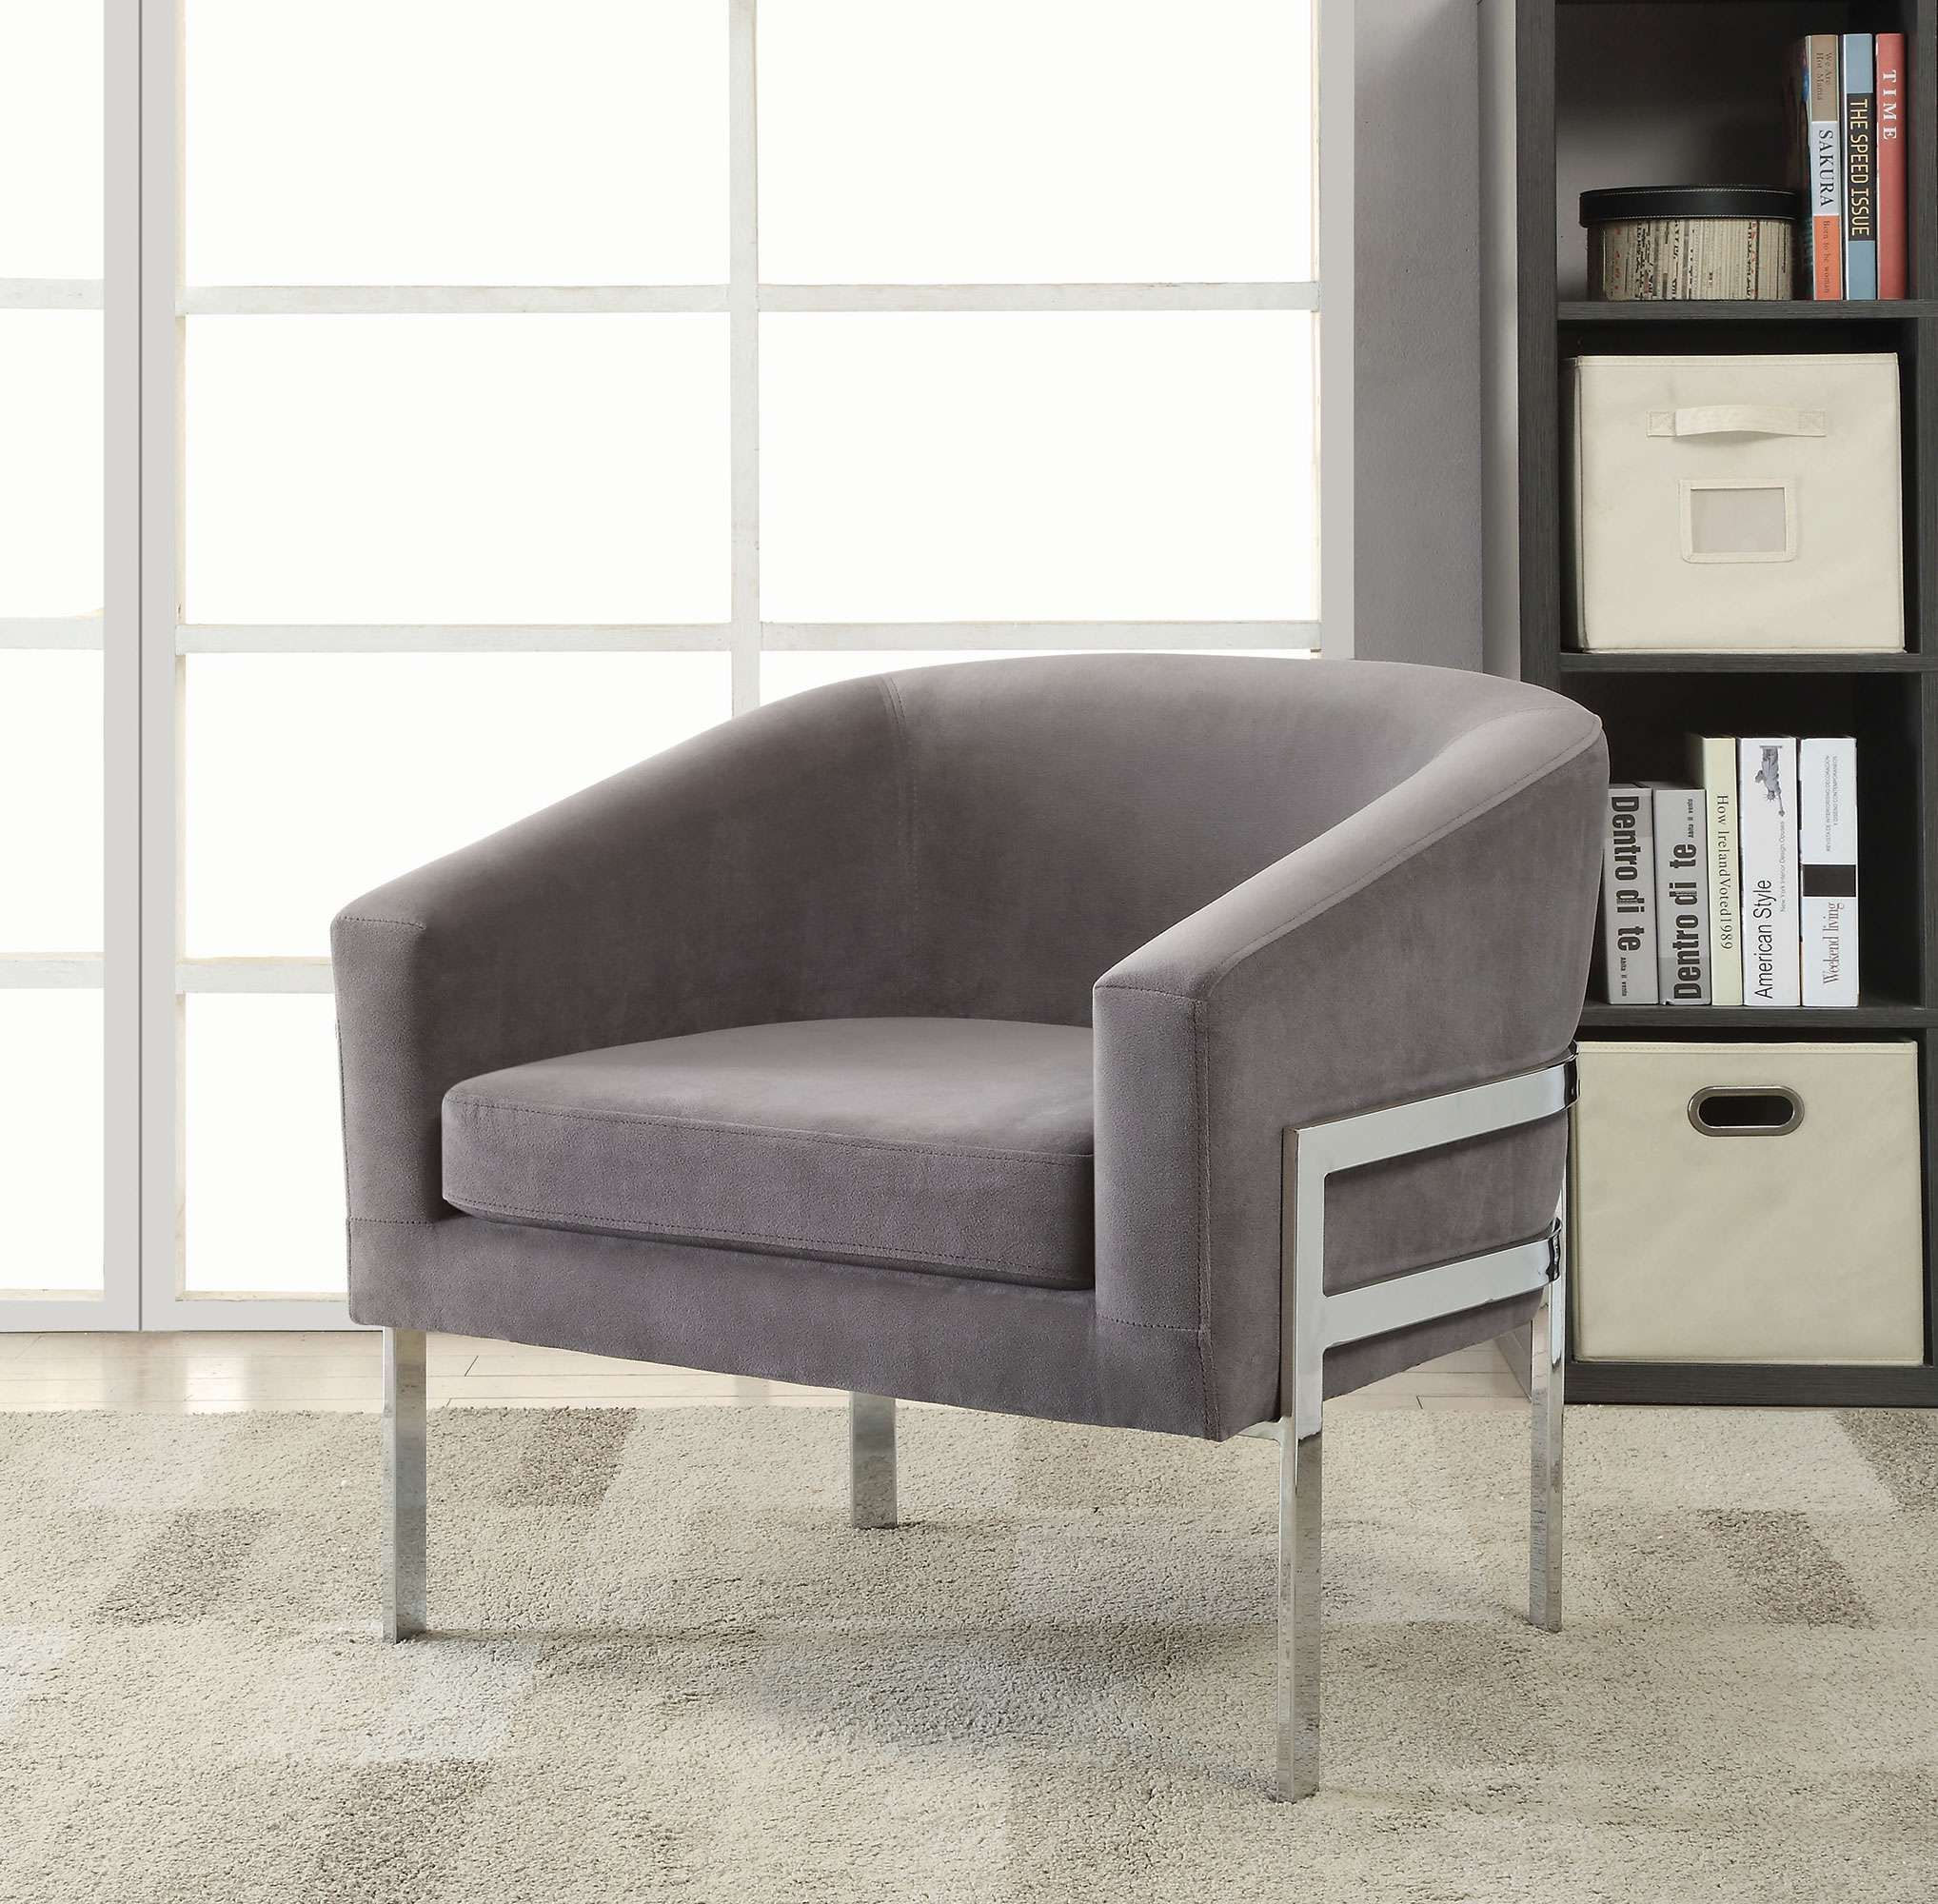 Coaster Black Barrel Accent Chair With Chrome Base And Gray Fabric